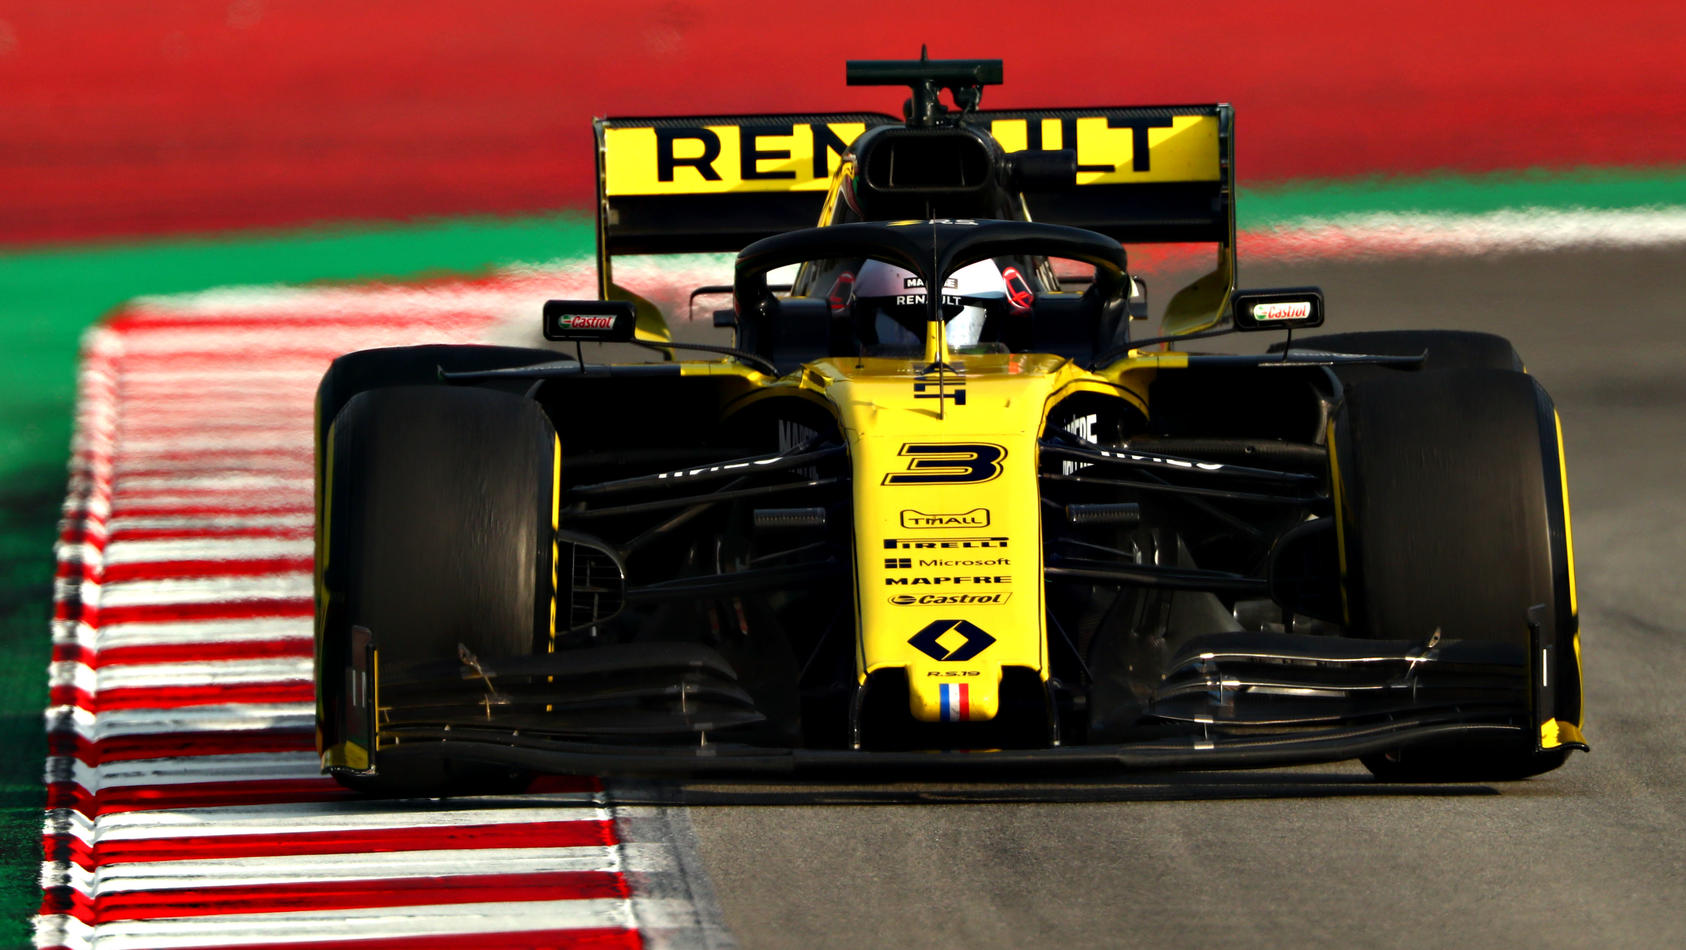 FILE PHOTO: McLaren Announce Signing Of Daniel Ricciardo From Renault For 2021 F1 Winter Testing in Barcelona - Day Three